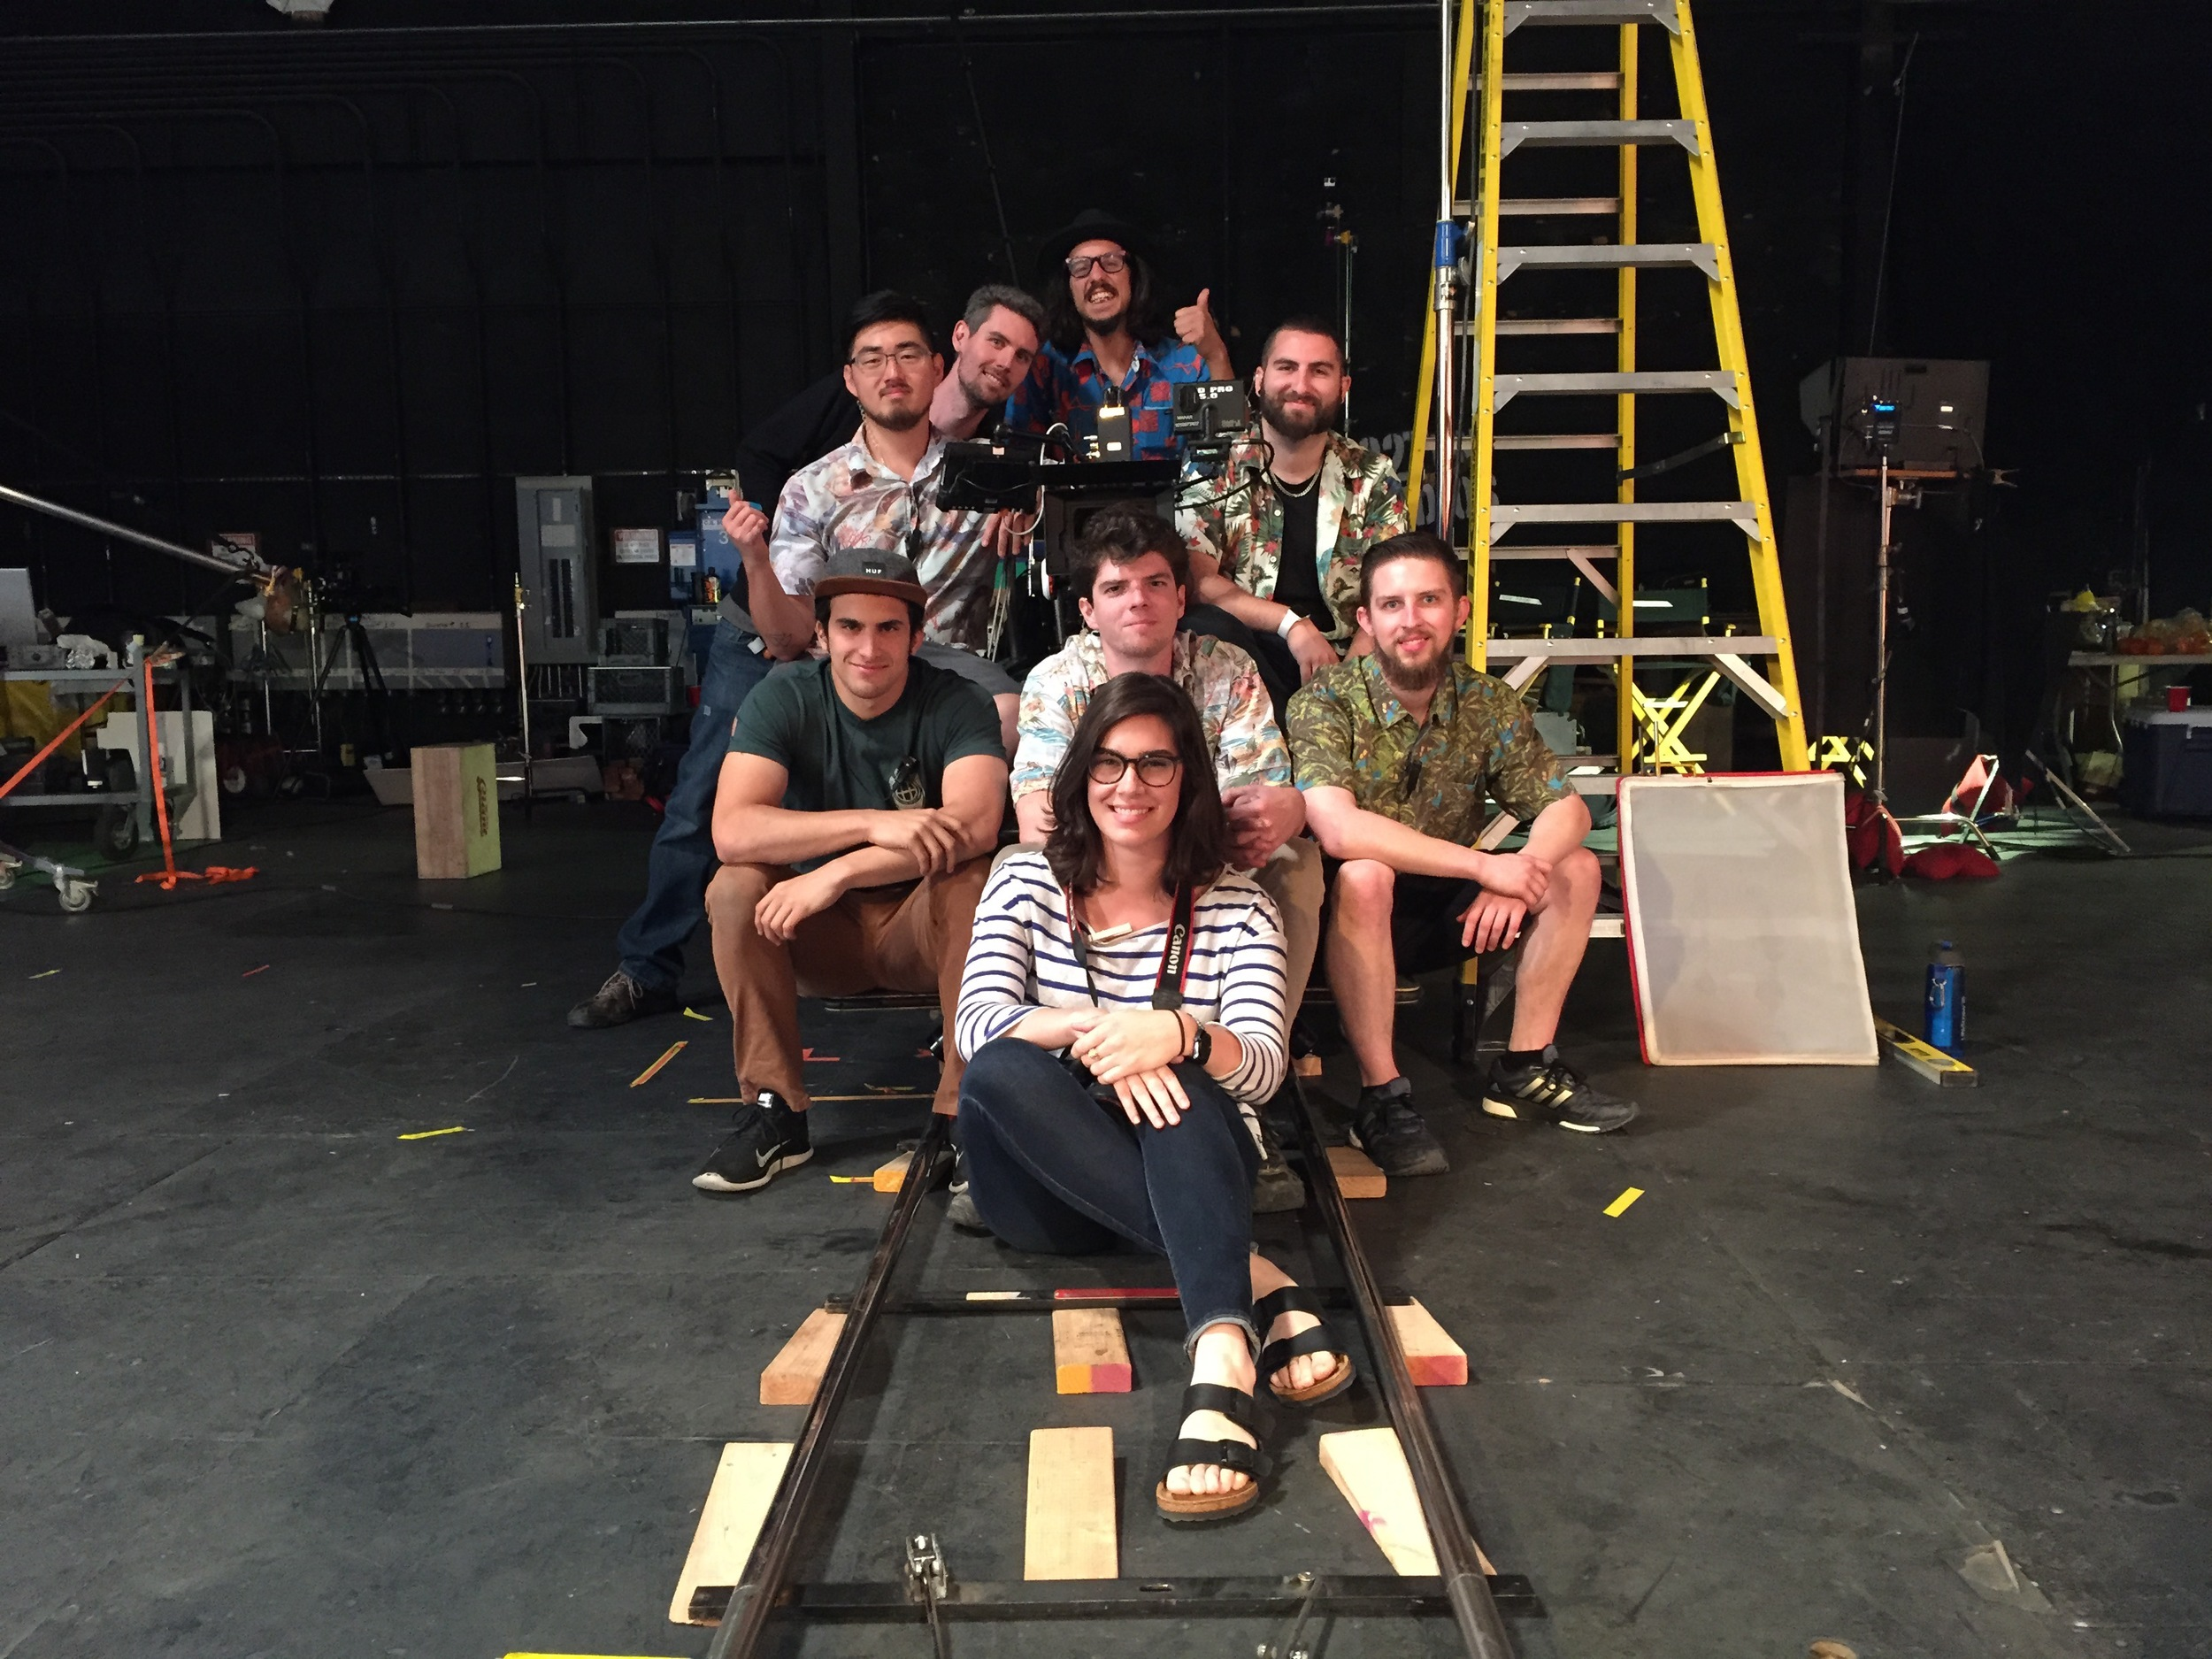 Camera, G&E, and Sound Departments